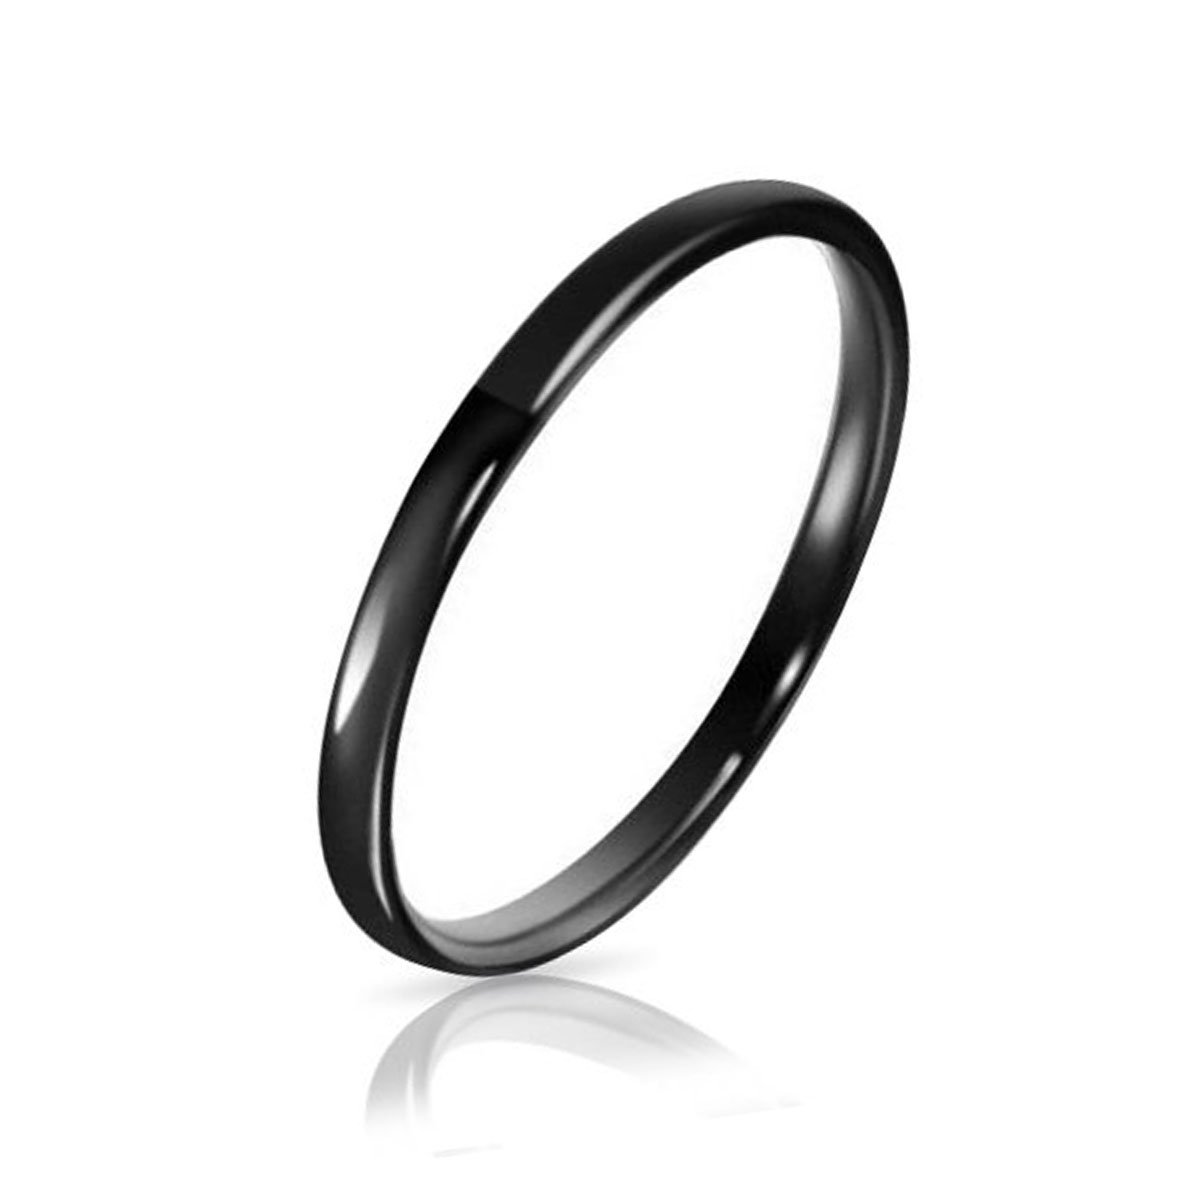 Three Keys Jewelry 2mm Tungsten Carbide Wedding Ring Black Women's Wedding Band Engagement Band Comfort Fit High Polished Classy Domed Size 8